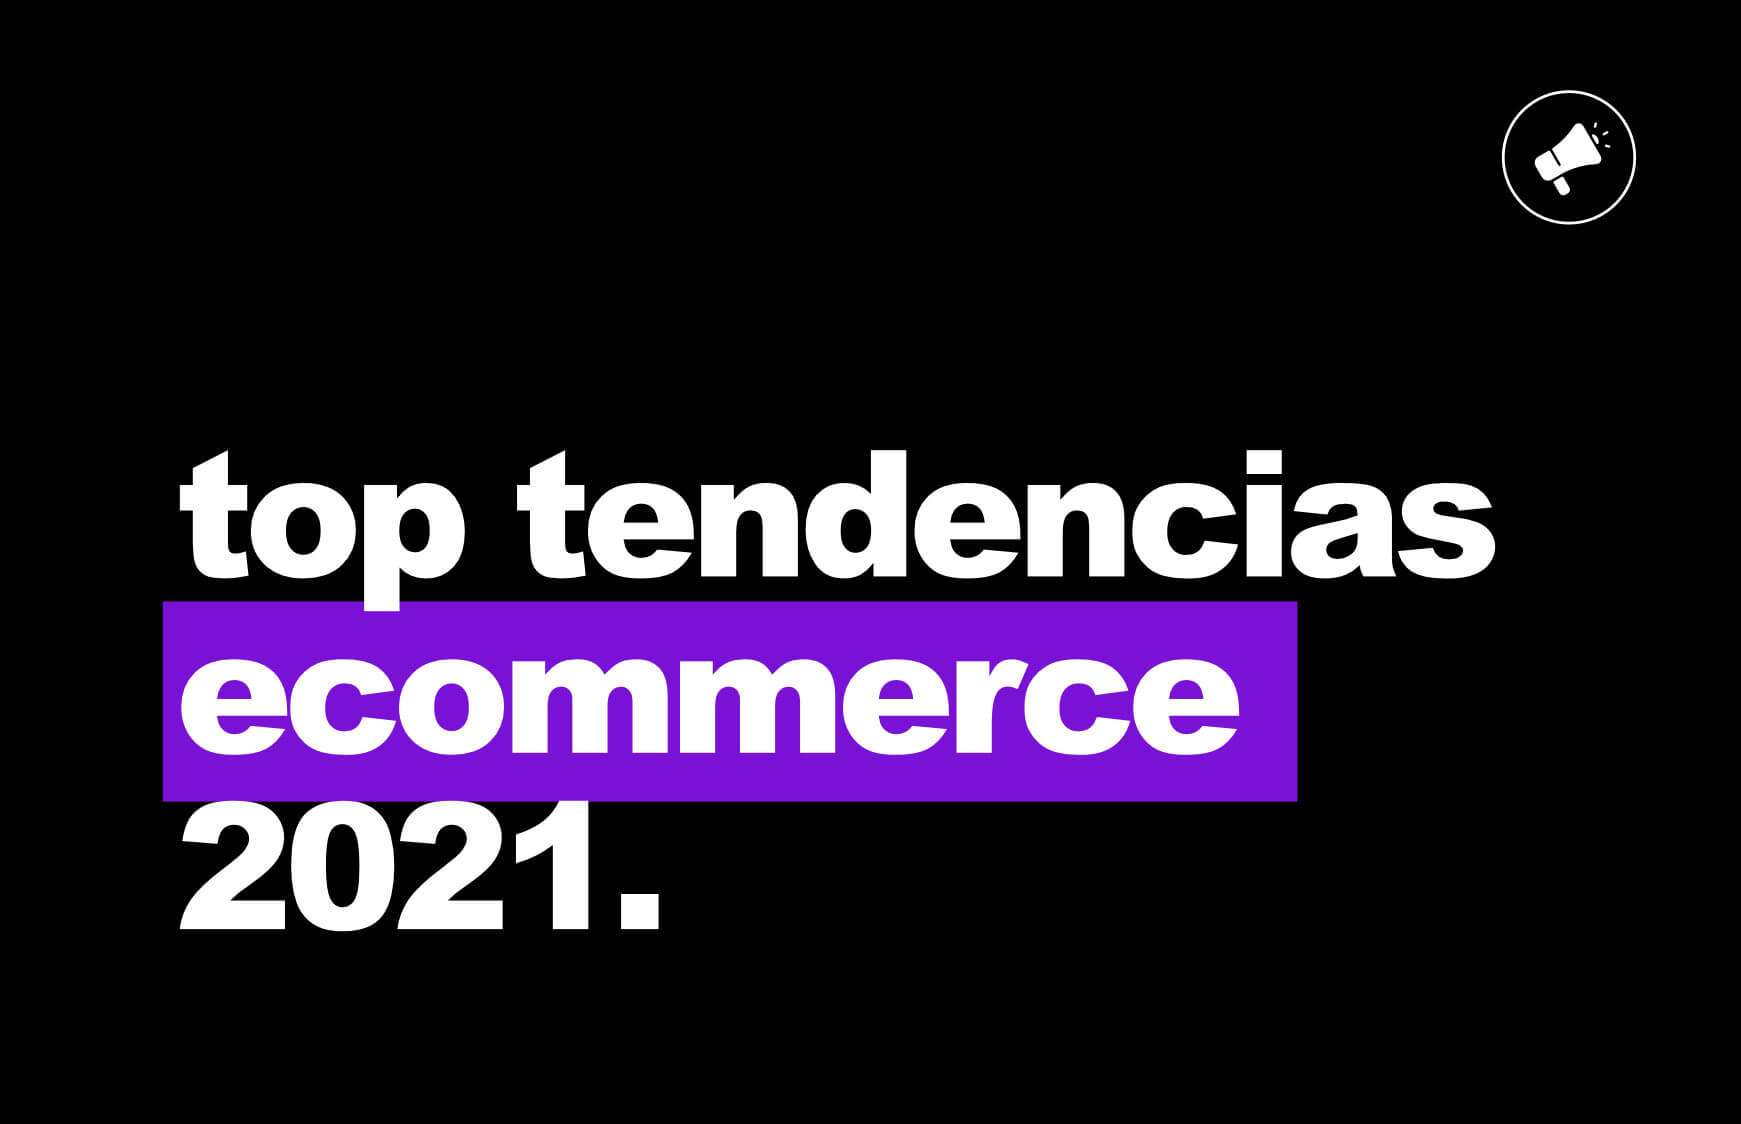 top tendencias ecommerce 2021